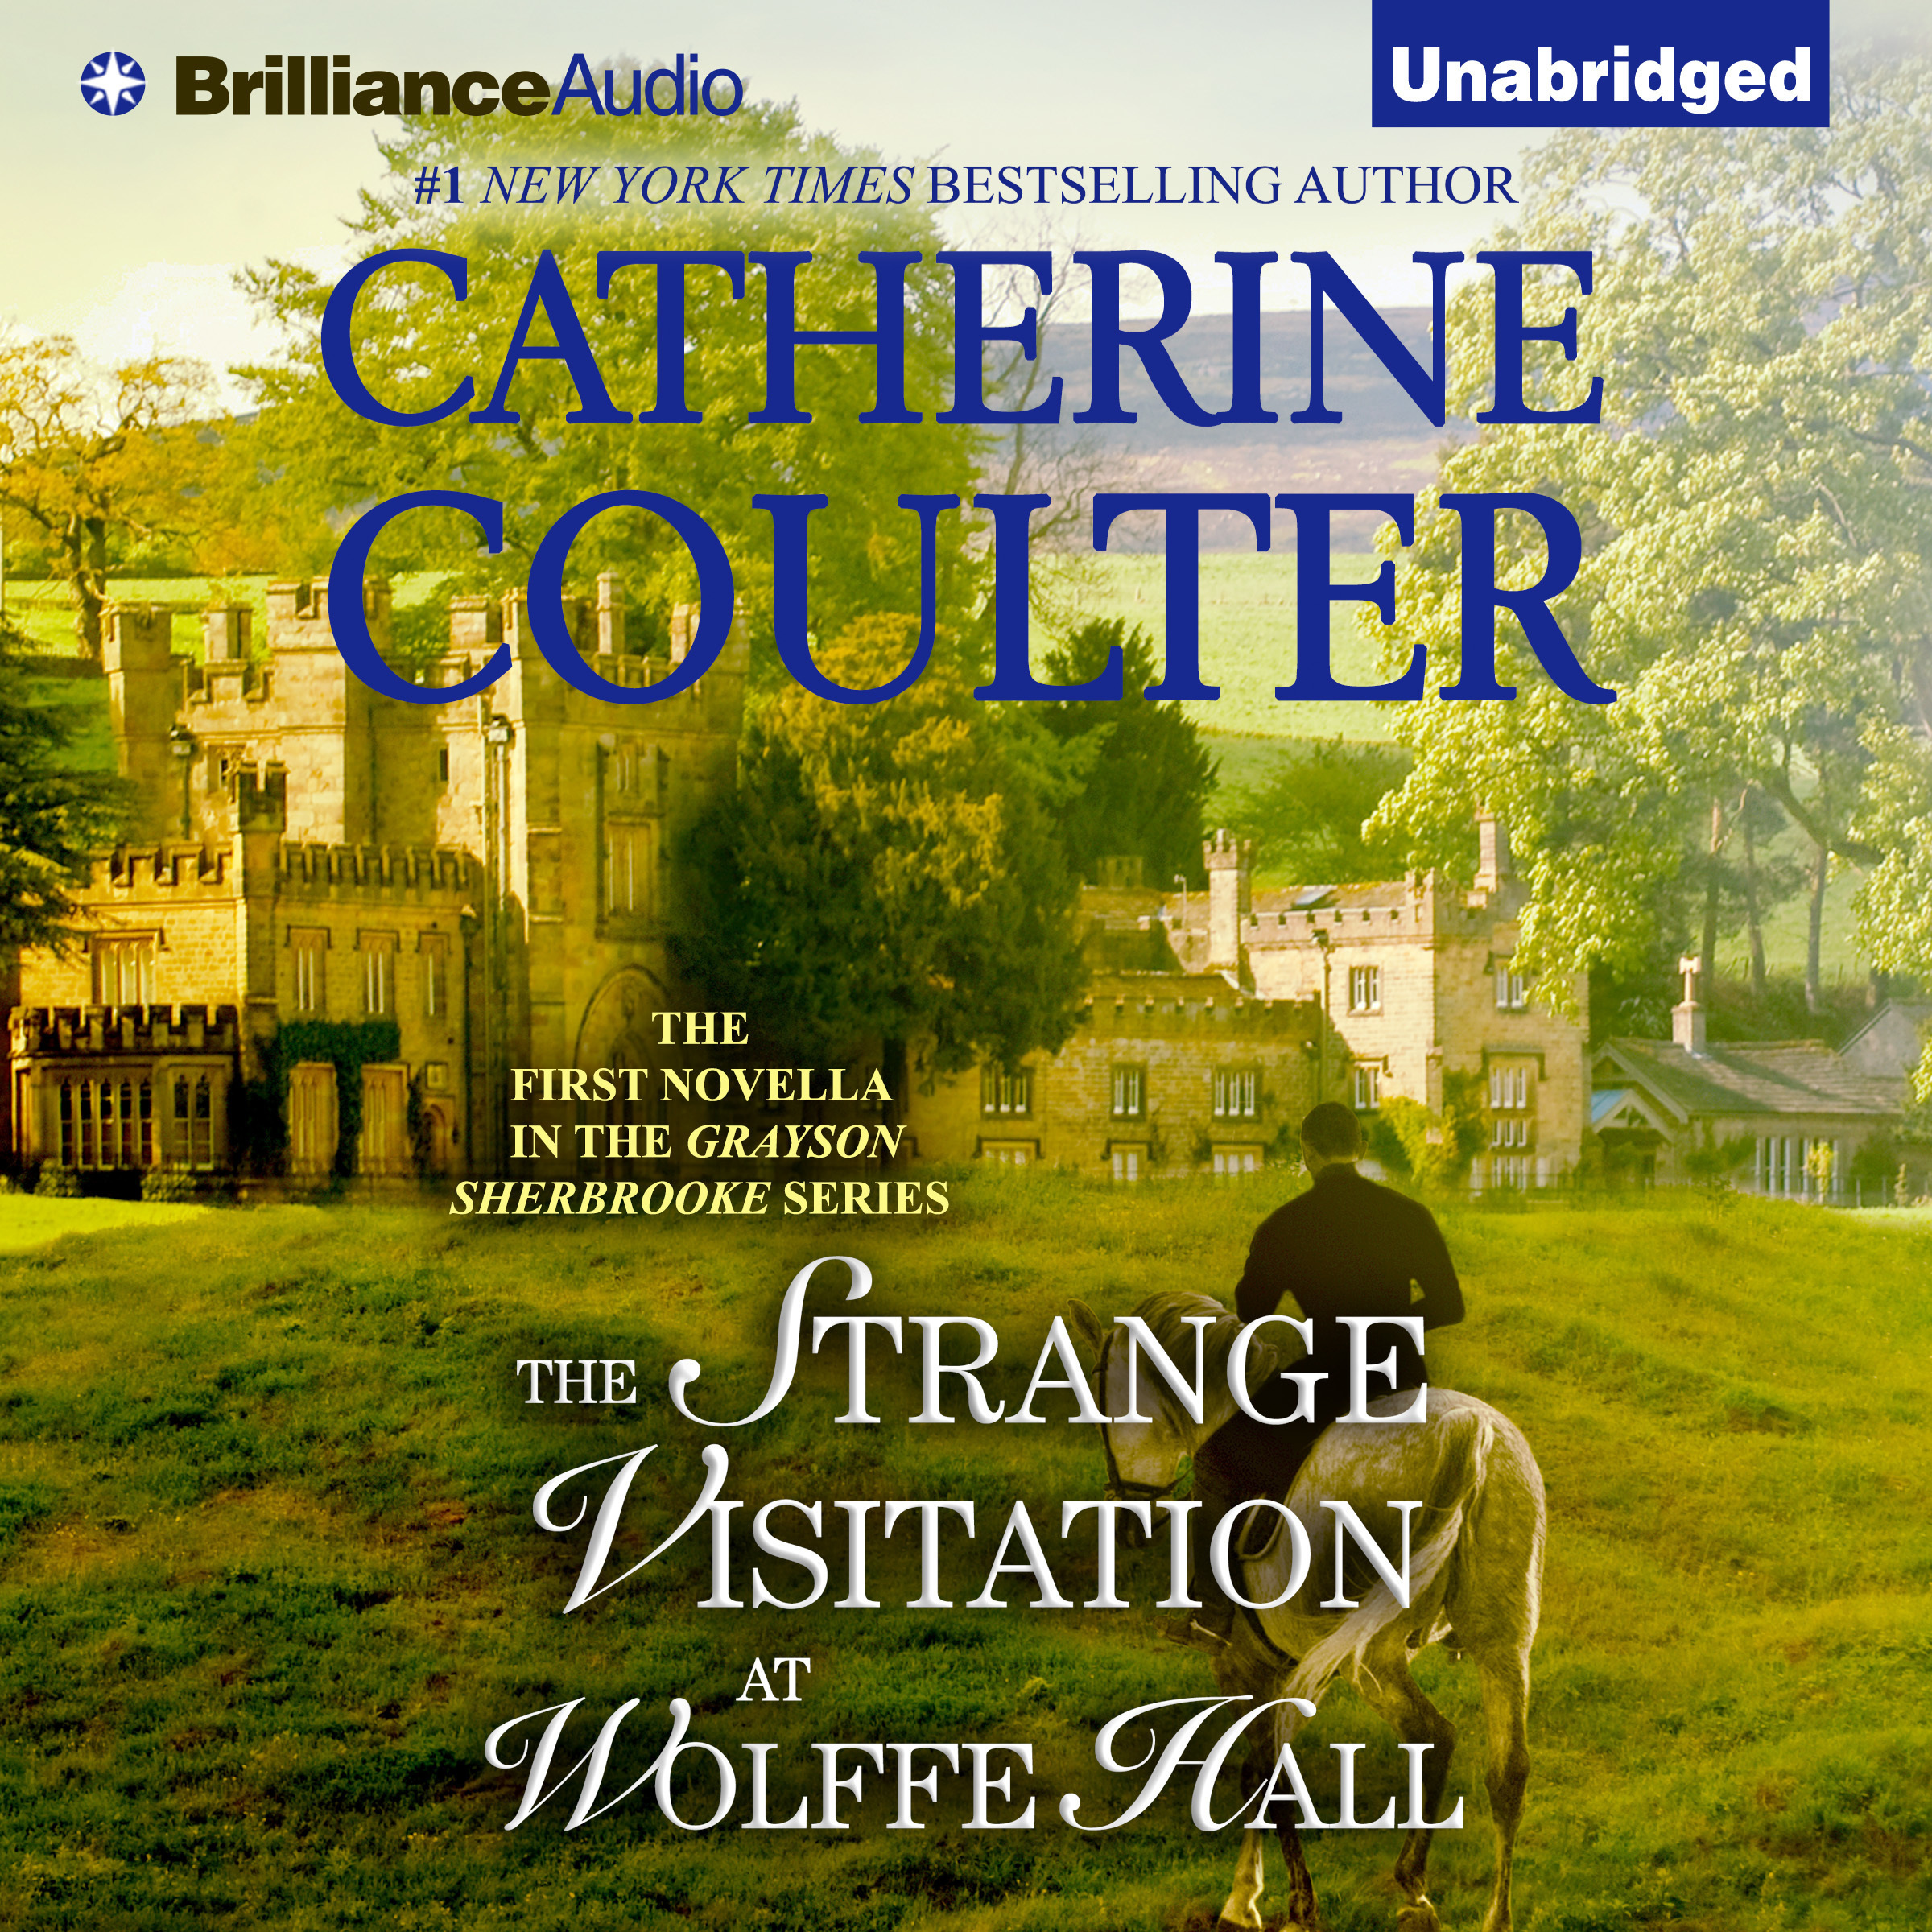 Printable The Strange Visitation at Wolffe Hall Audiobook Cover Art